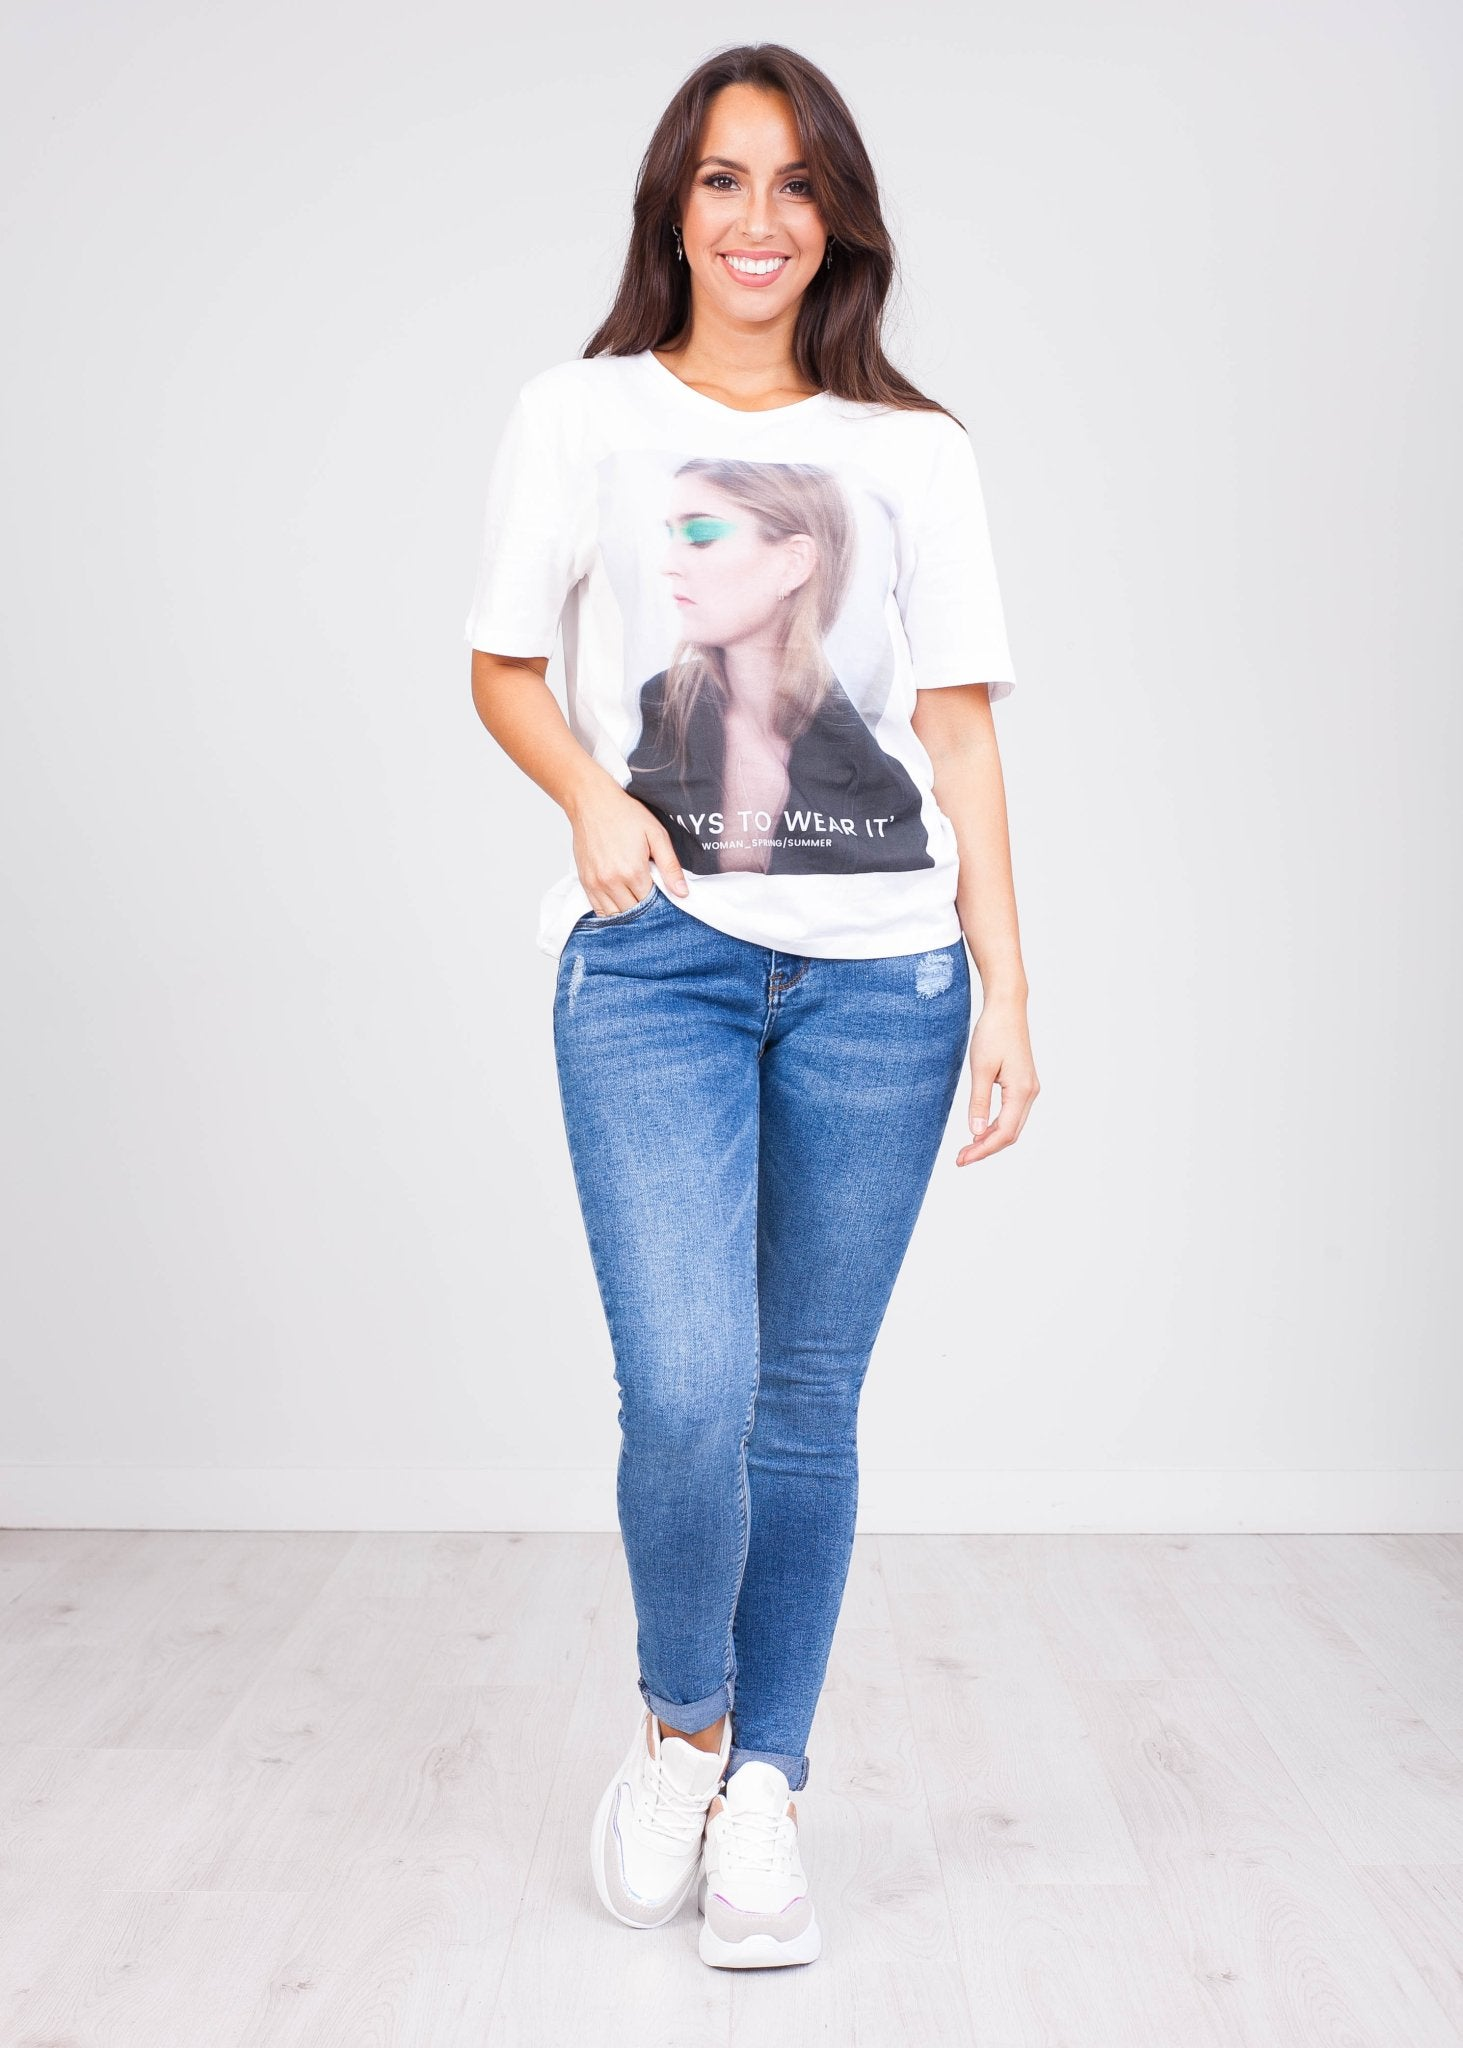 Charlee Lady T-Shirt - The Walk in Wardrobe